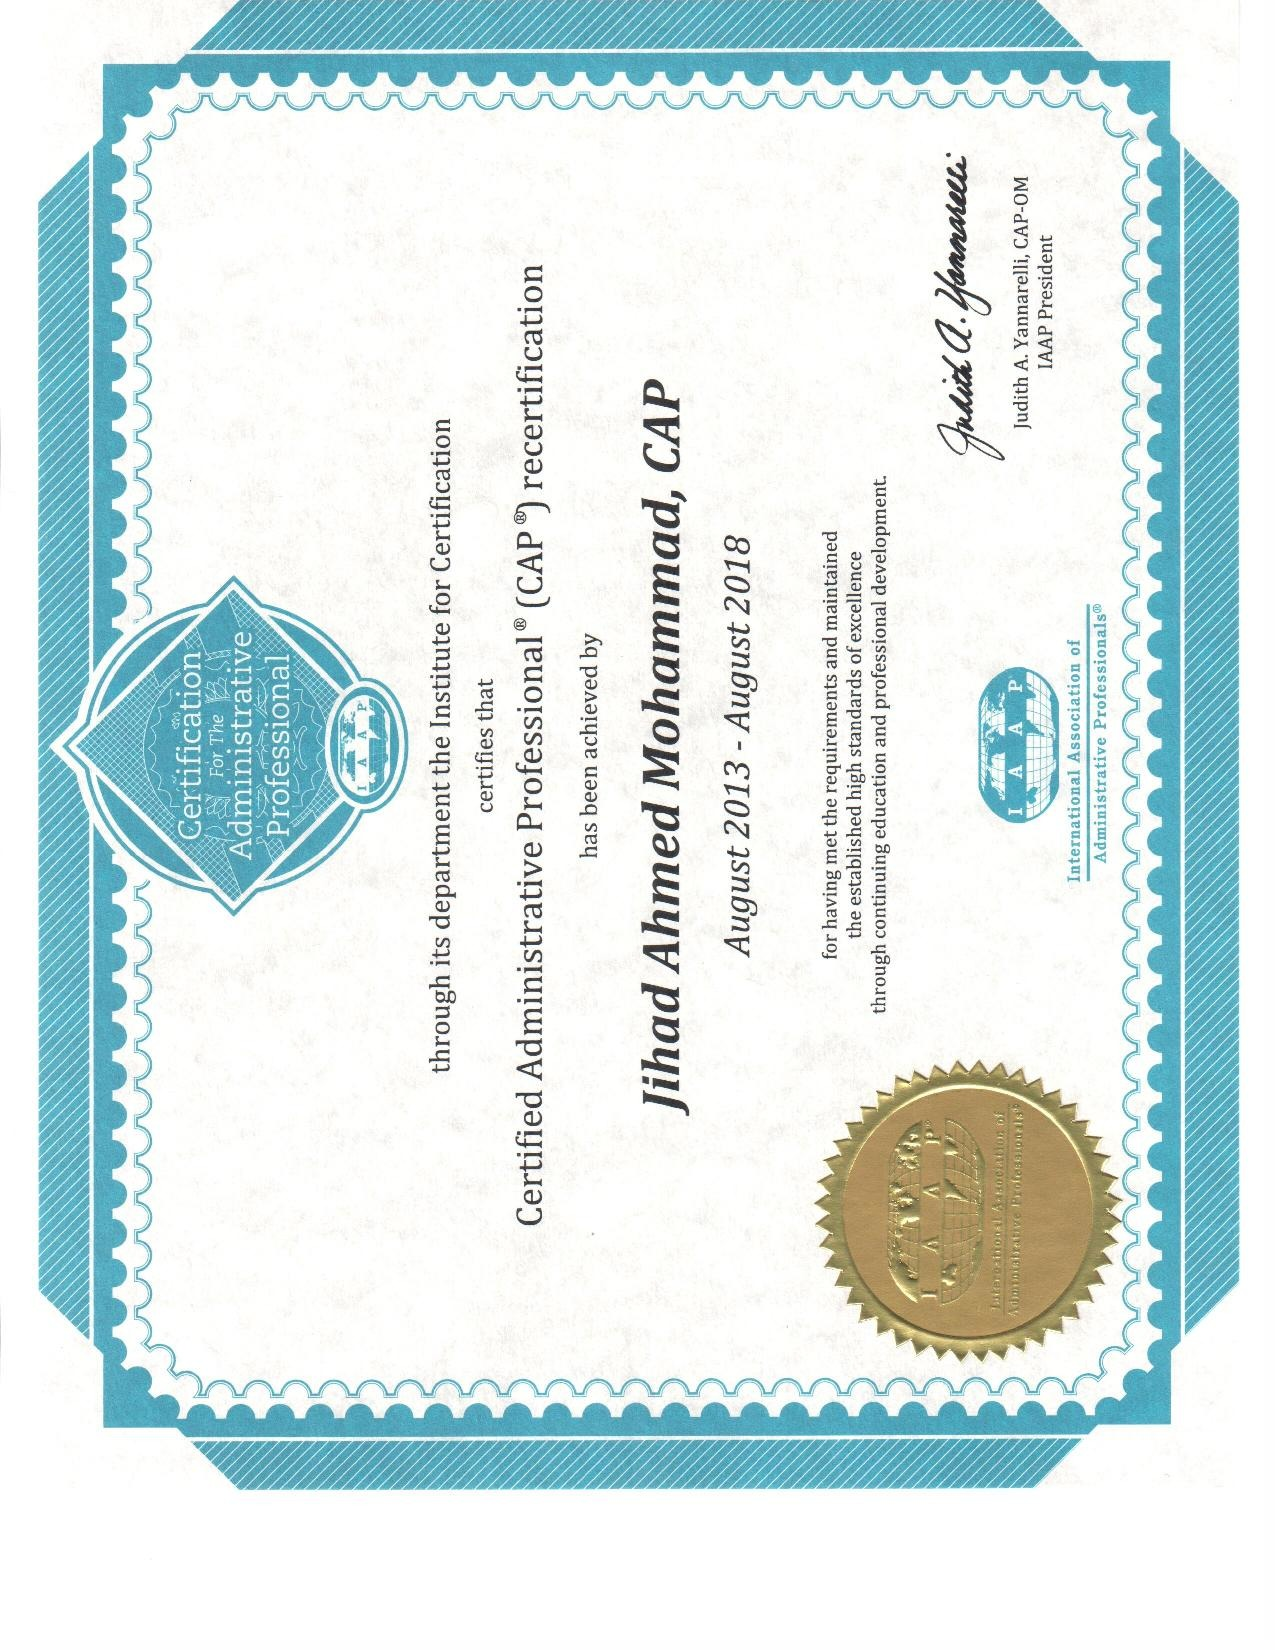 Jihad mohammad mba spp sphrishrm scp odcp cmc pmp bayt certified administrative professional cap certificate 1betcityfo Images